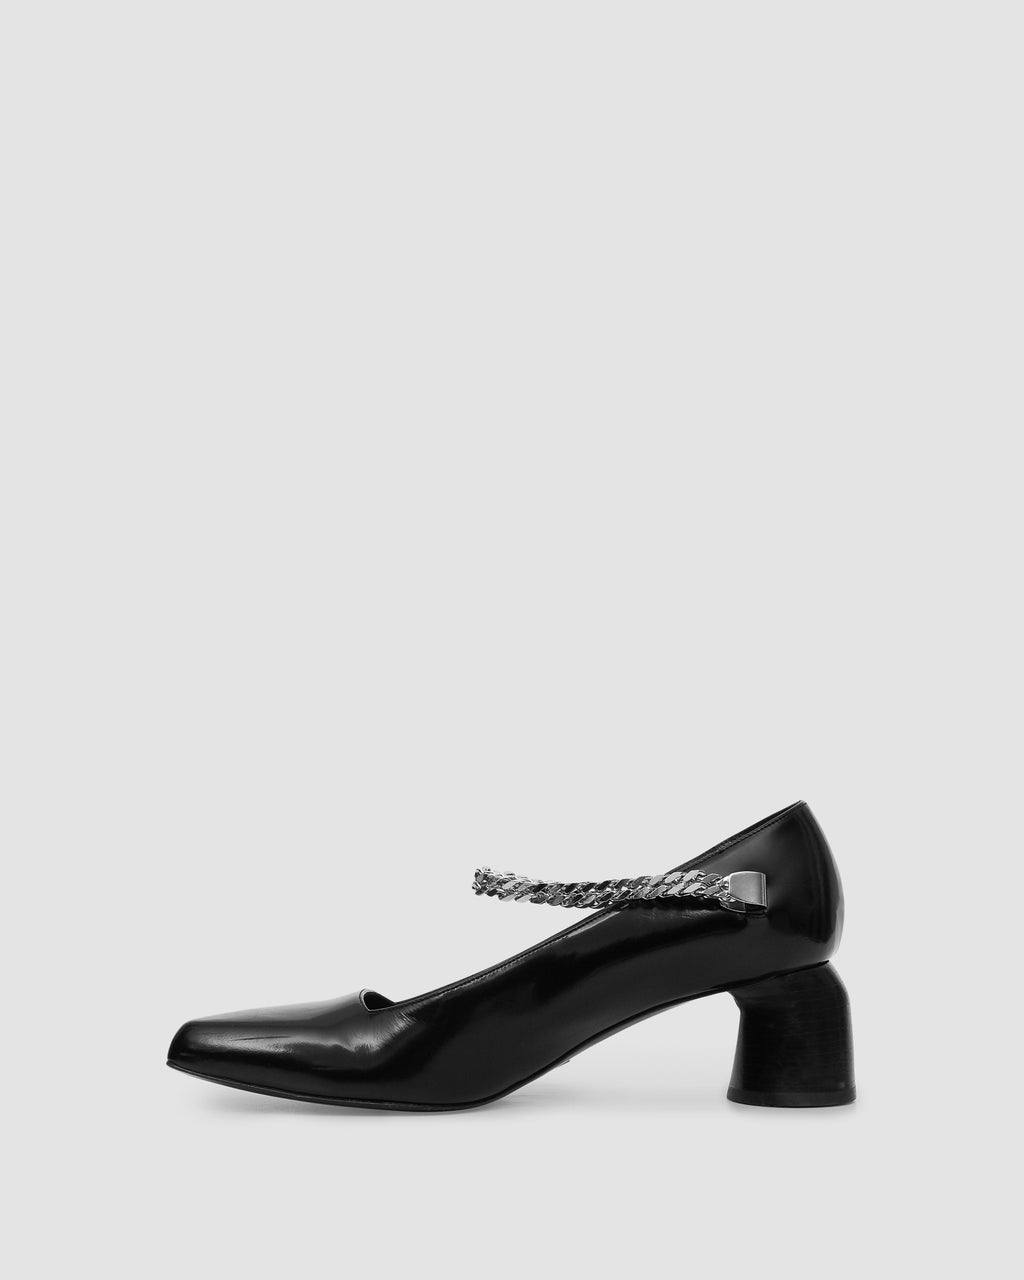 1017 ALYX 9SM | MEDIUM HEEL | Shoe | BLACK, Google Shopping, PUMPS, S20, S20 Drop II, Shoes, Woman, WOMEN